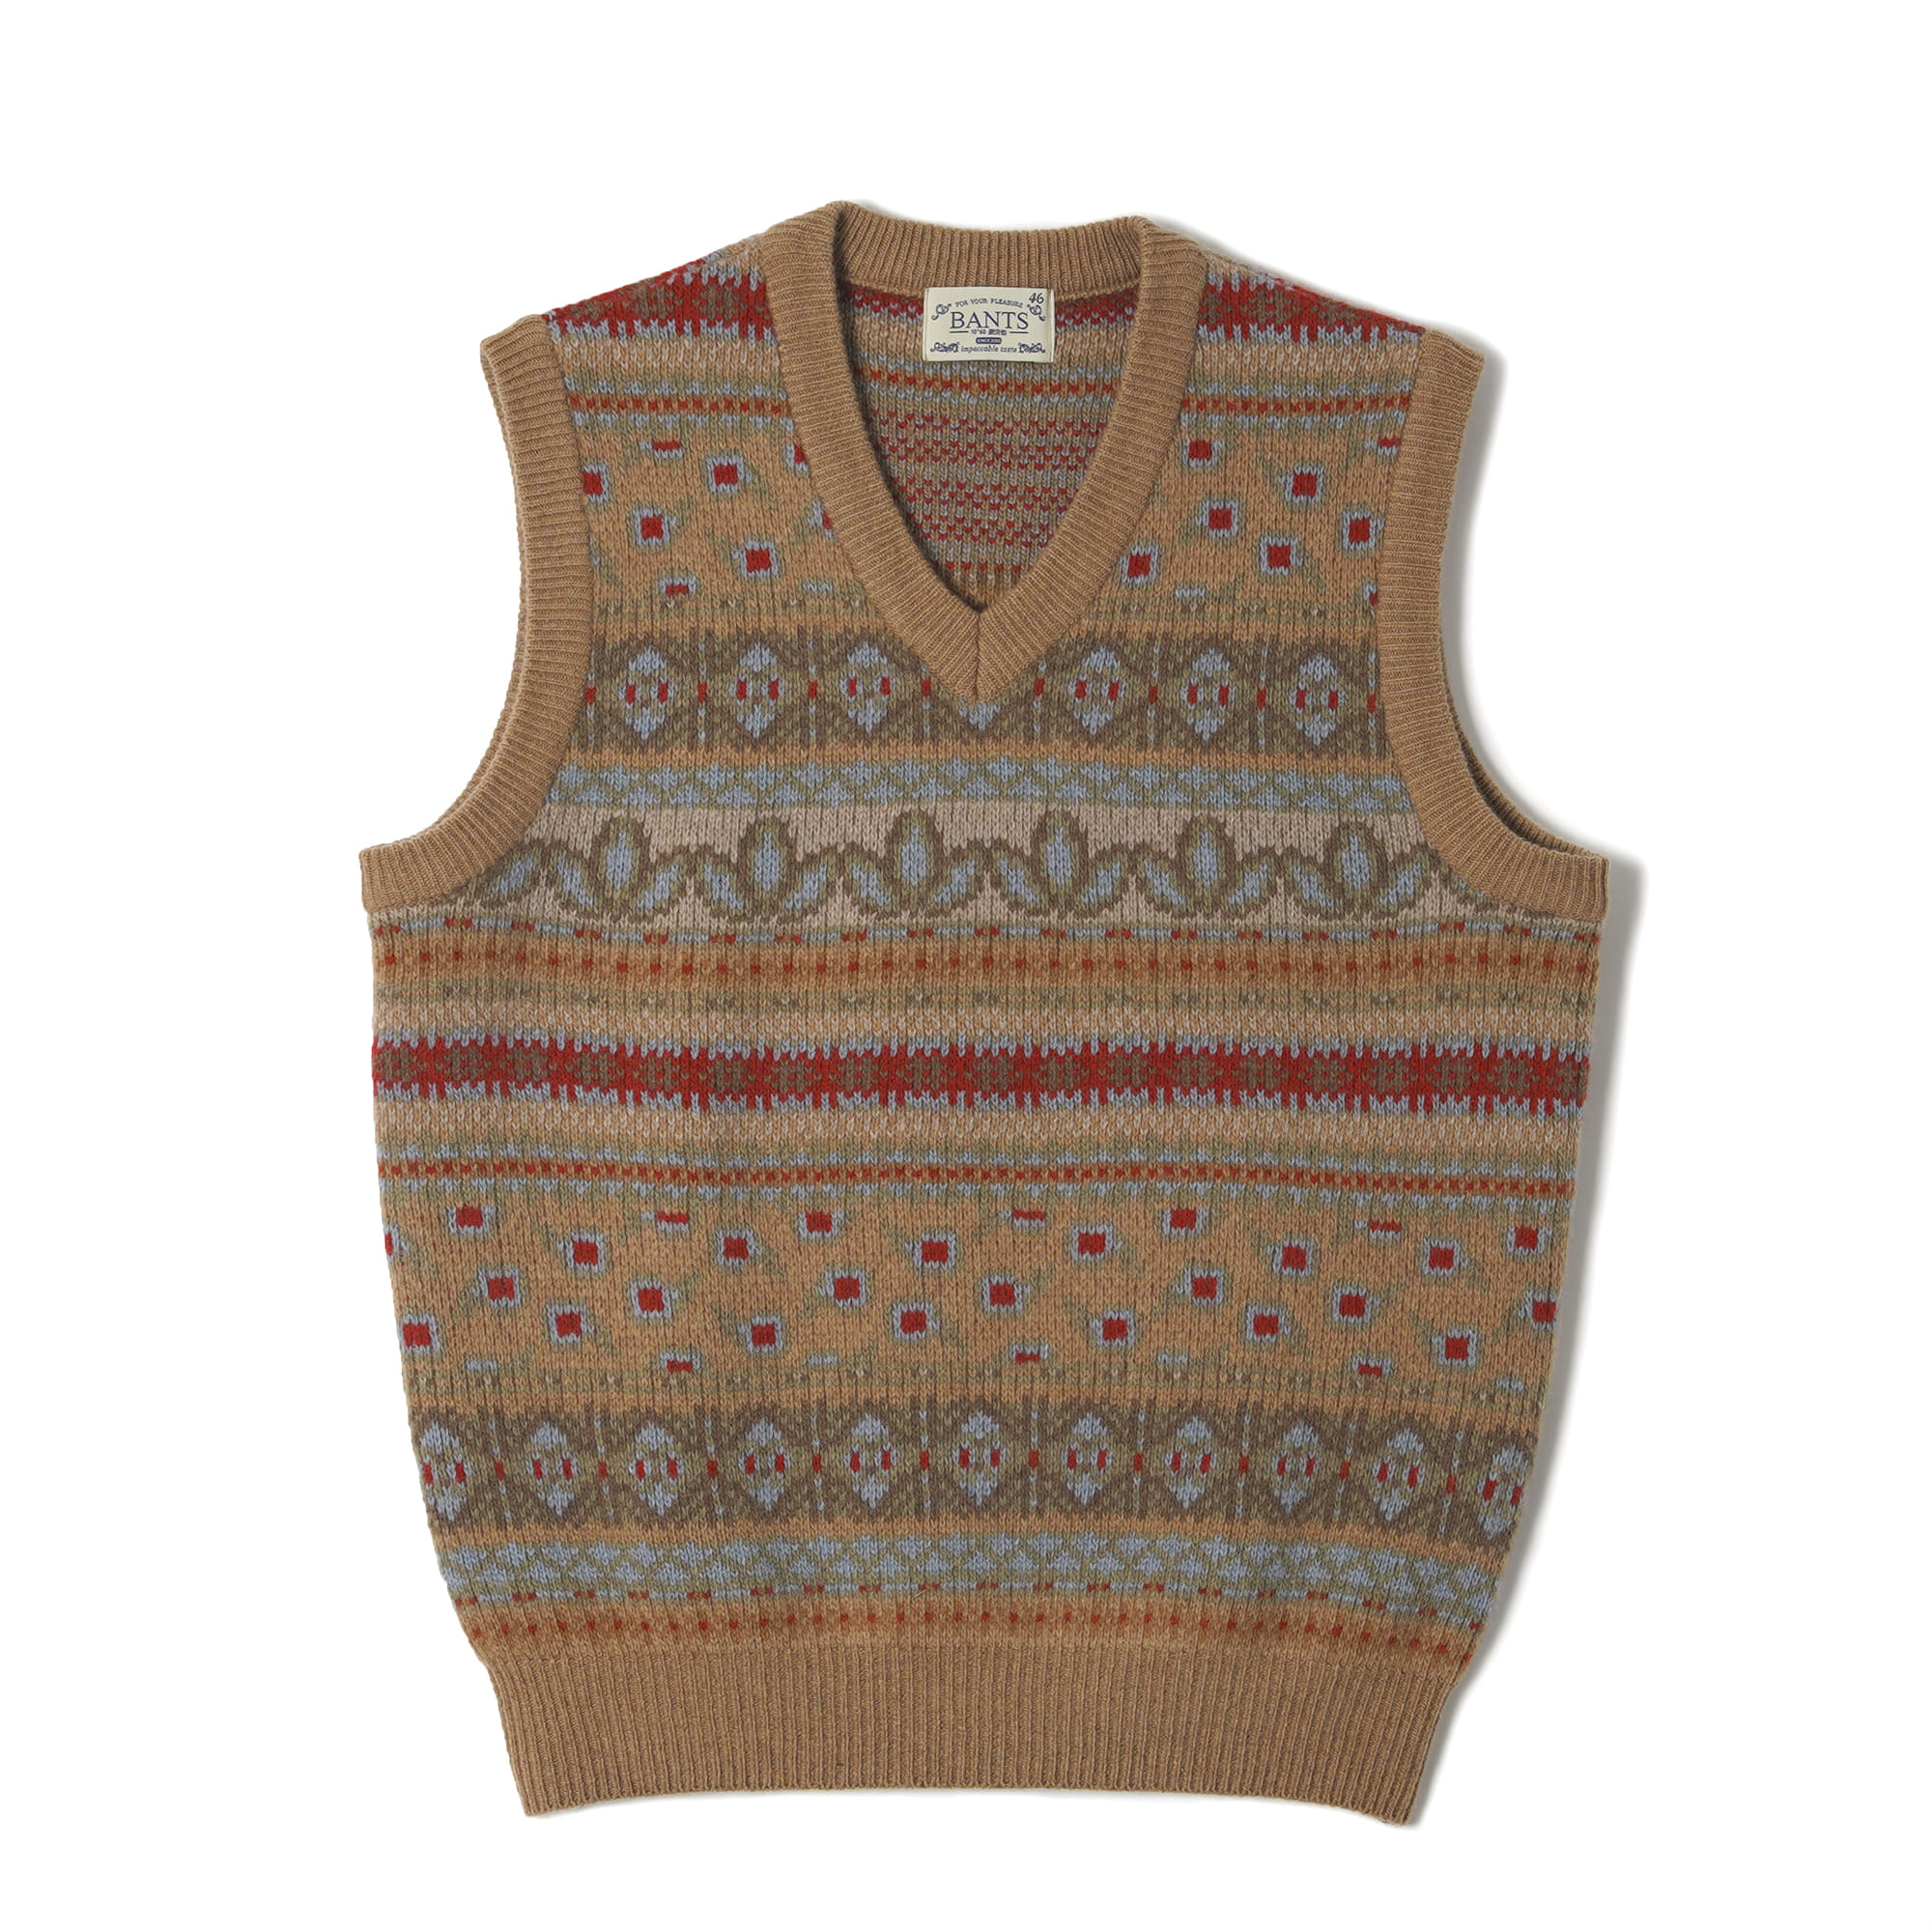 OSF Tasmania Wool Fair Isle Knit Vest - BeigeBANTS(반츠)